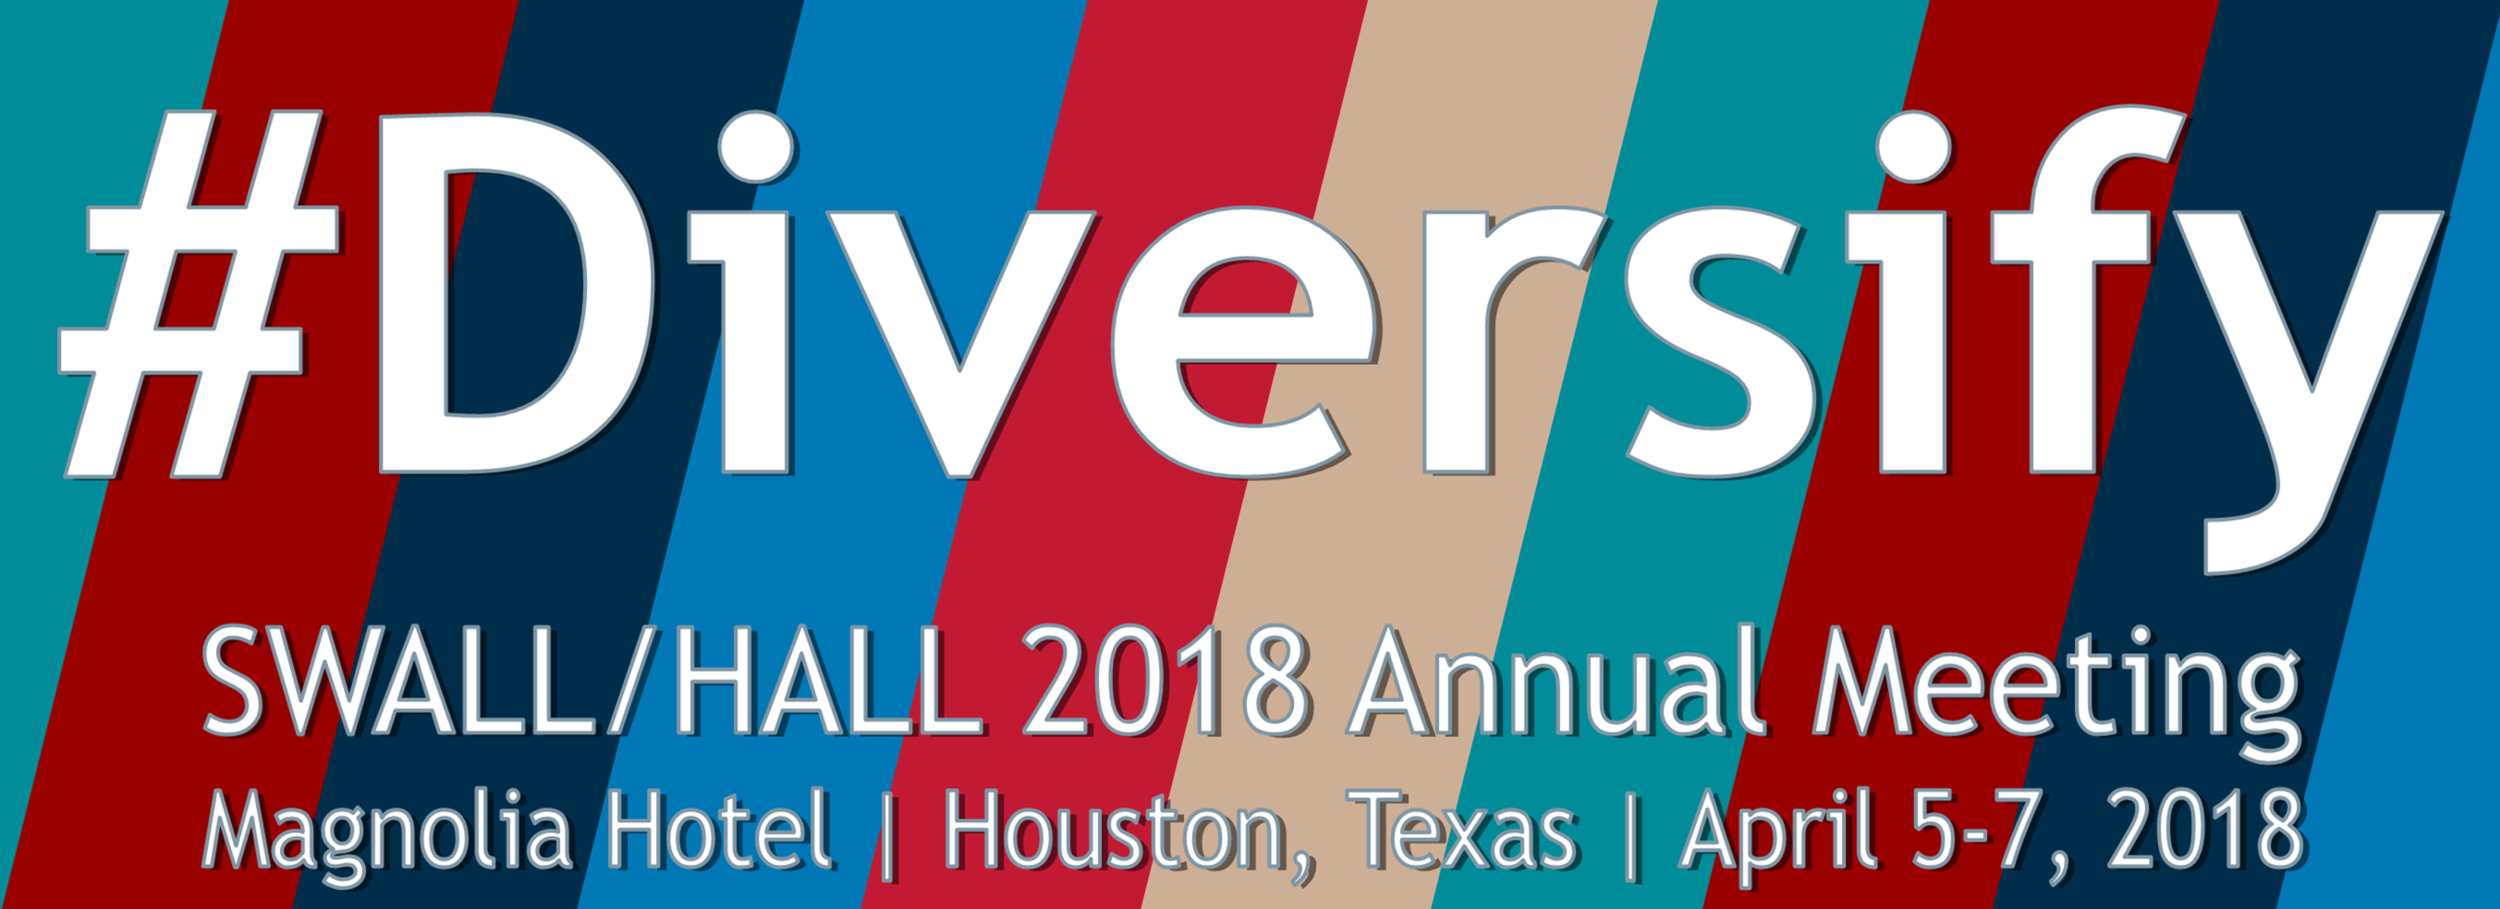 #Diversify  SWALL/HALL 2018 Annual Meeting | Magnolia Hotel | Houston, Texas | April 5-7, 2018